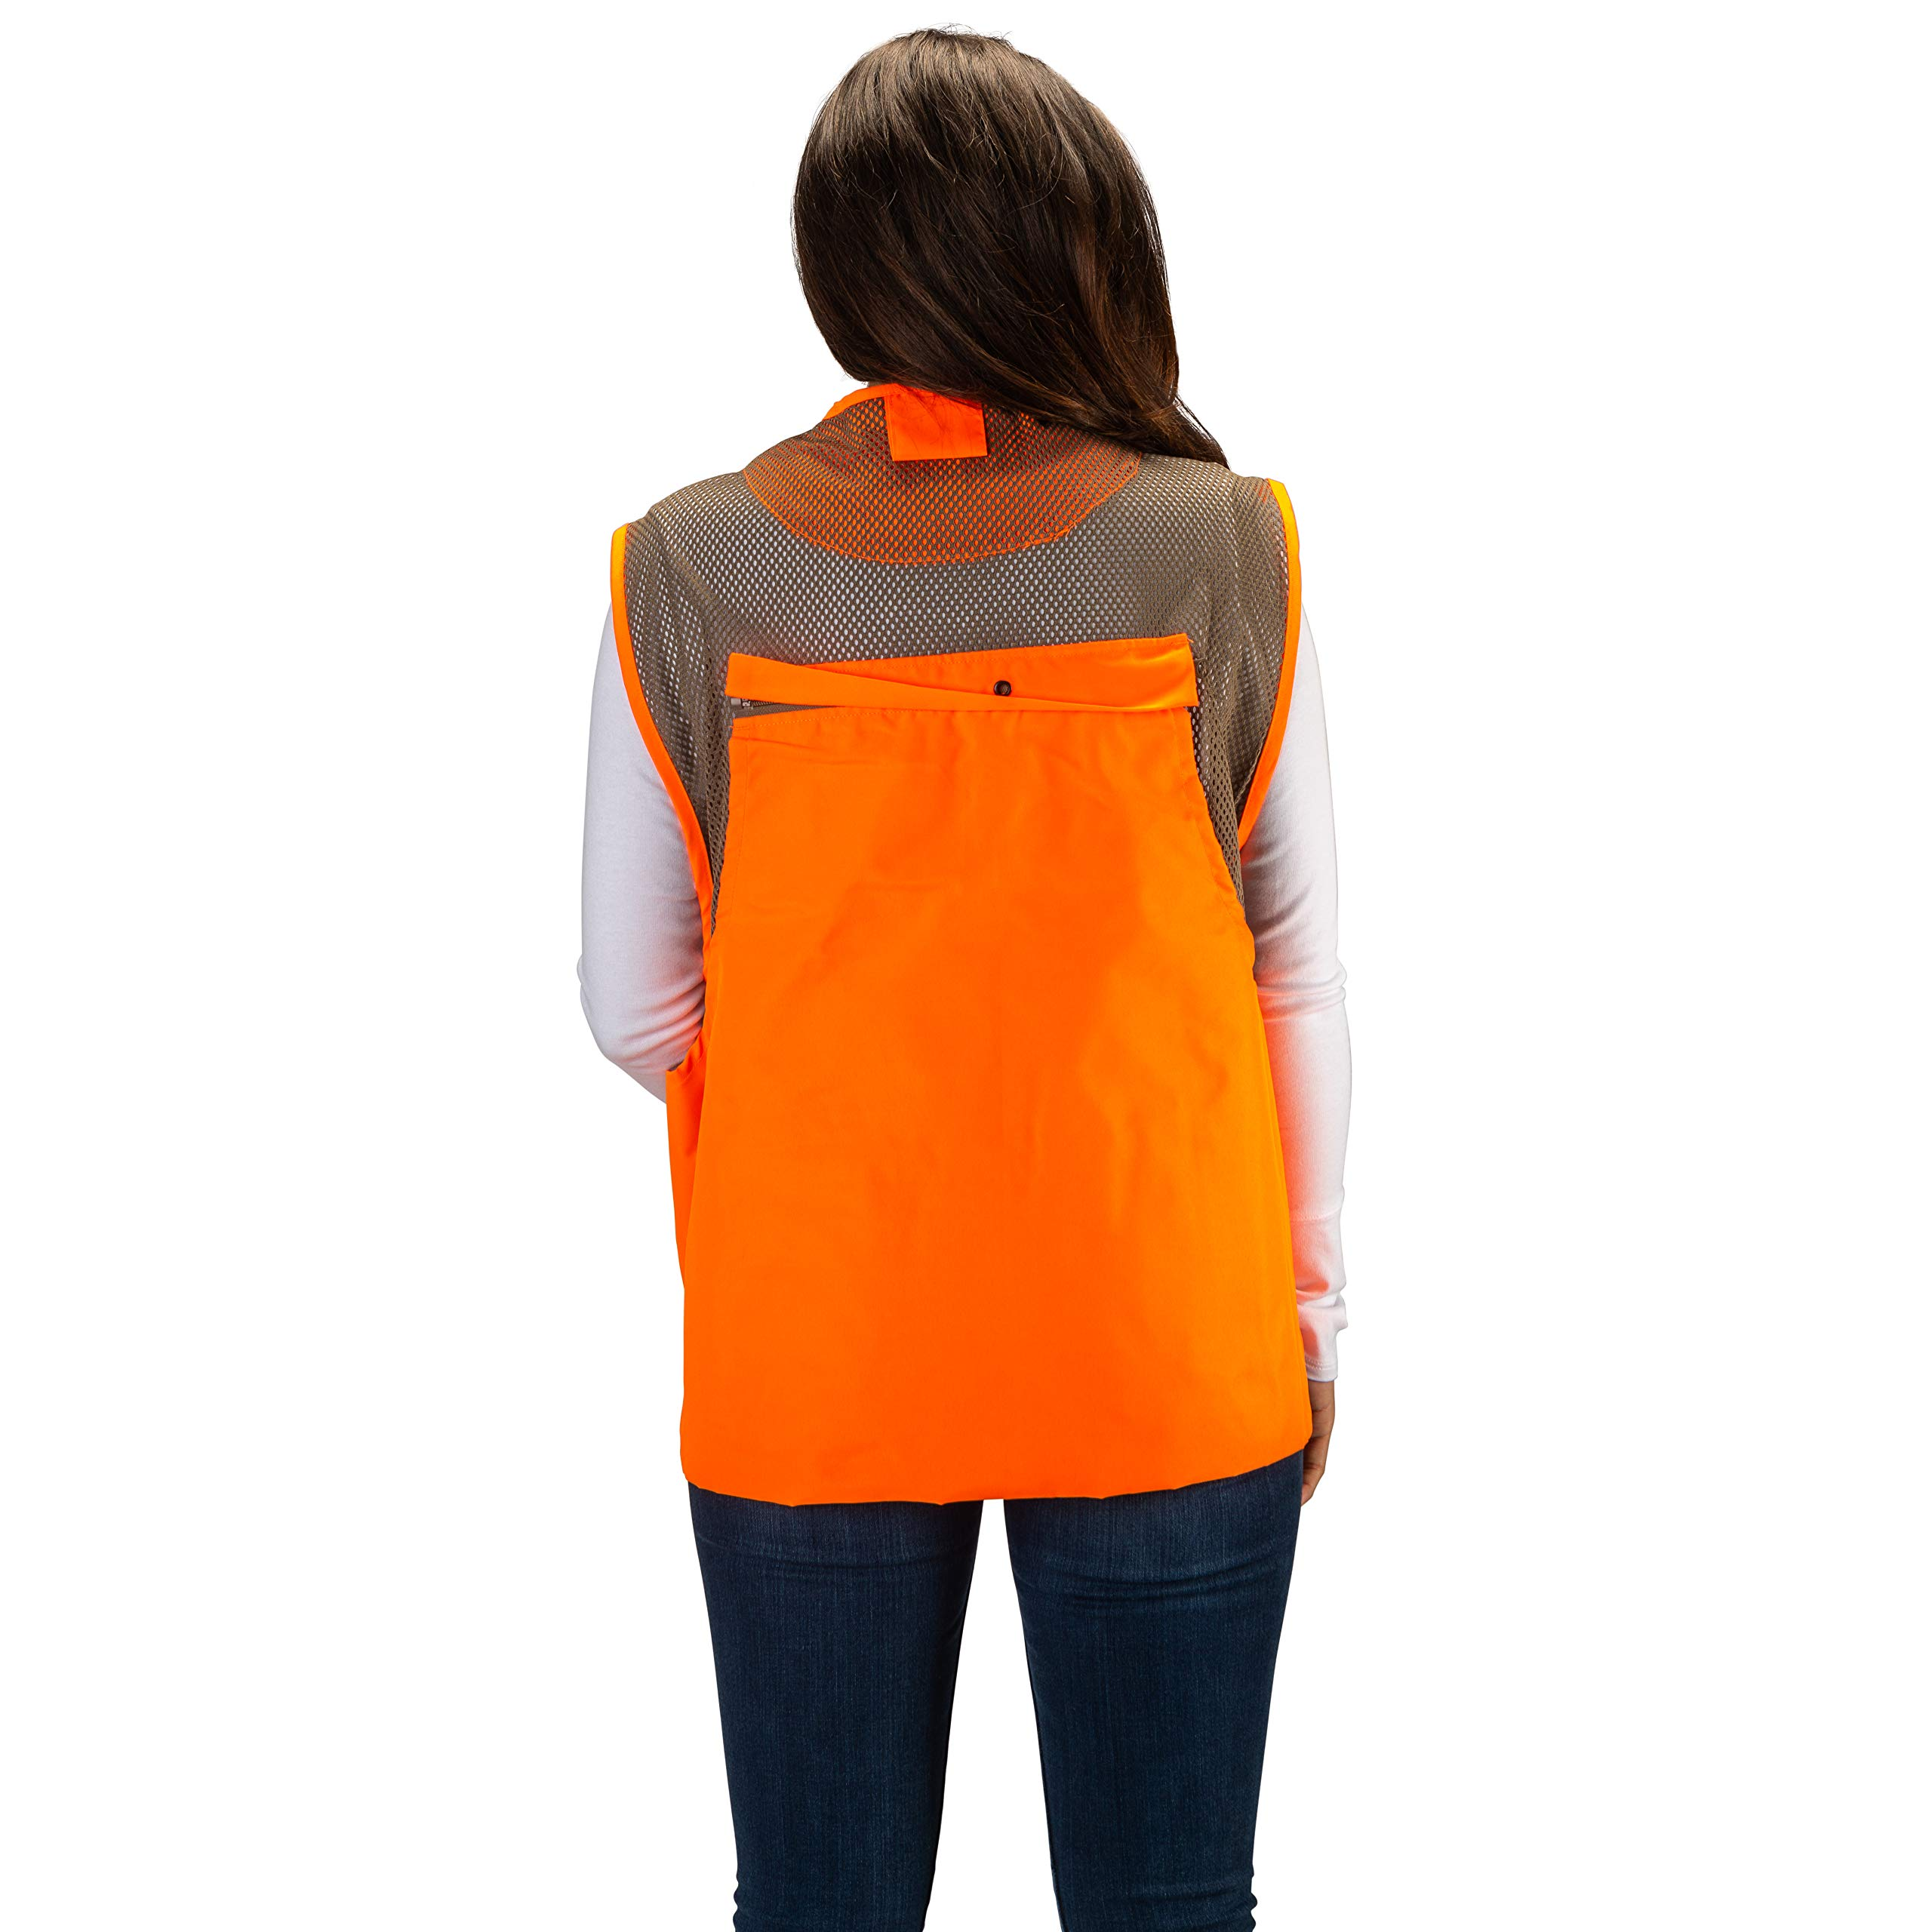 TrailCrest Mens Blaze Orange Safety Deluxe Front Loader Vest, 3X by TrailCrest (Image #4)